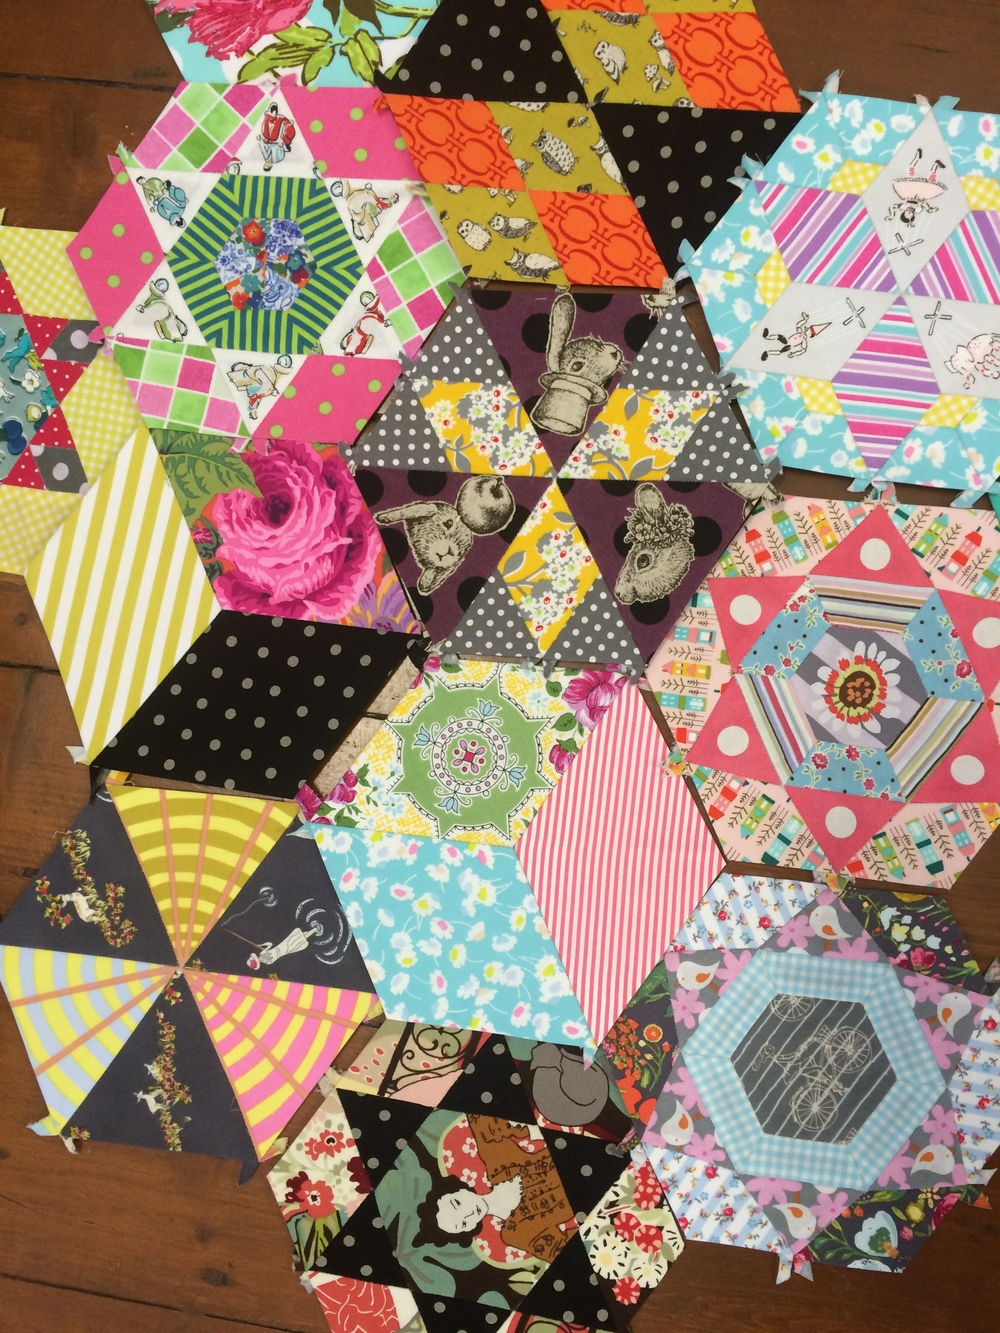 Prue Cowley's hexagon collection.